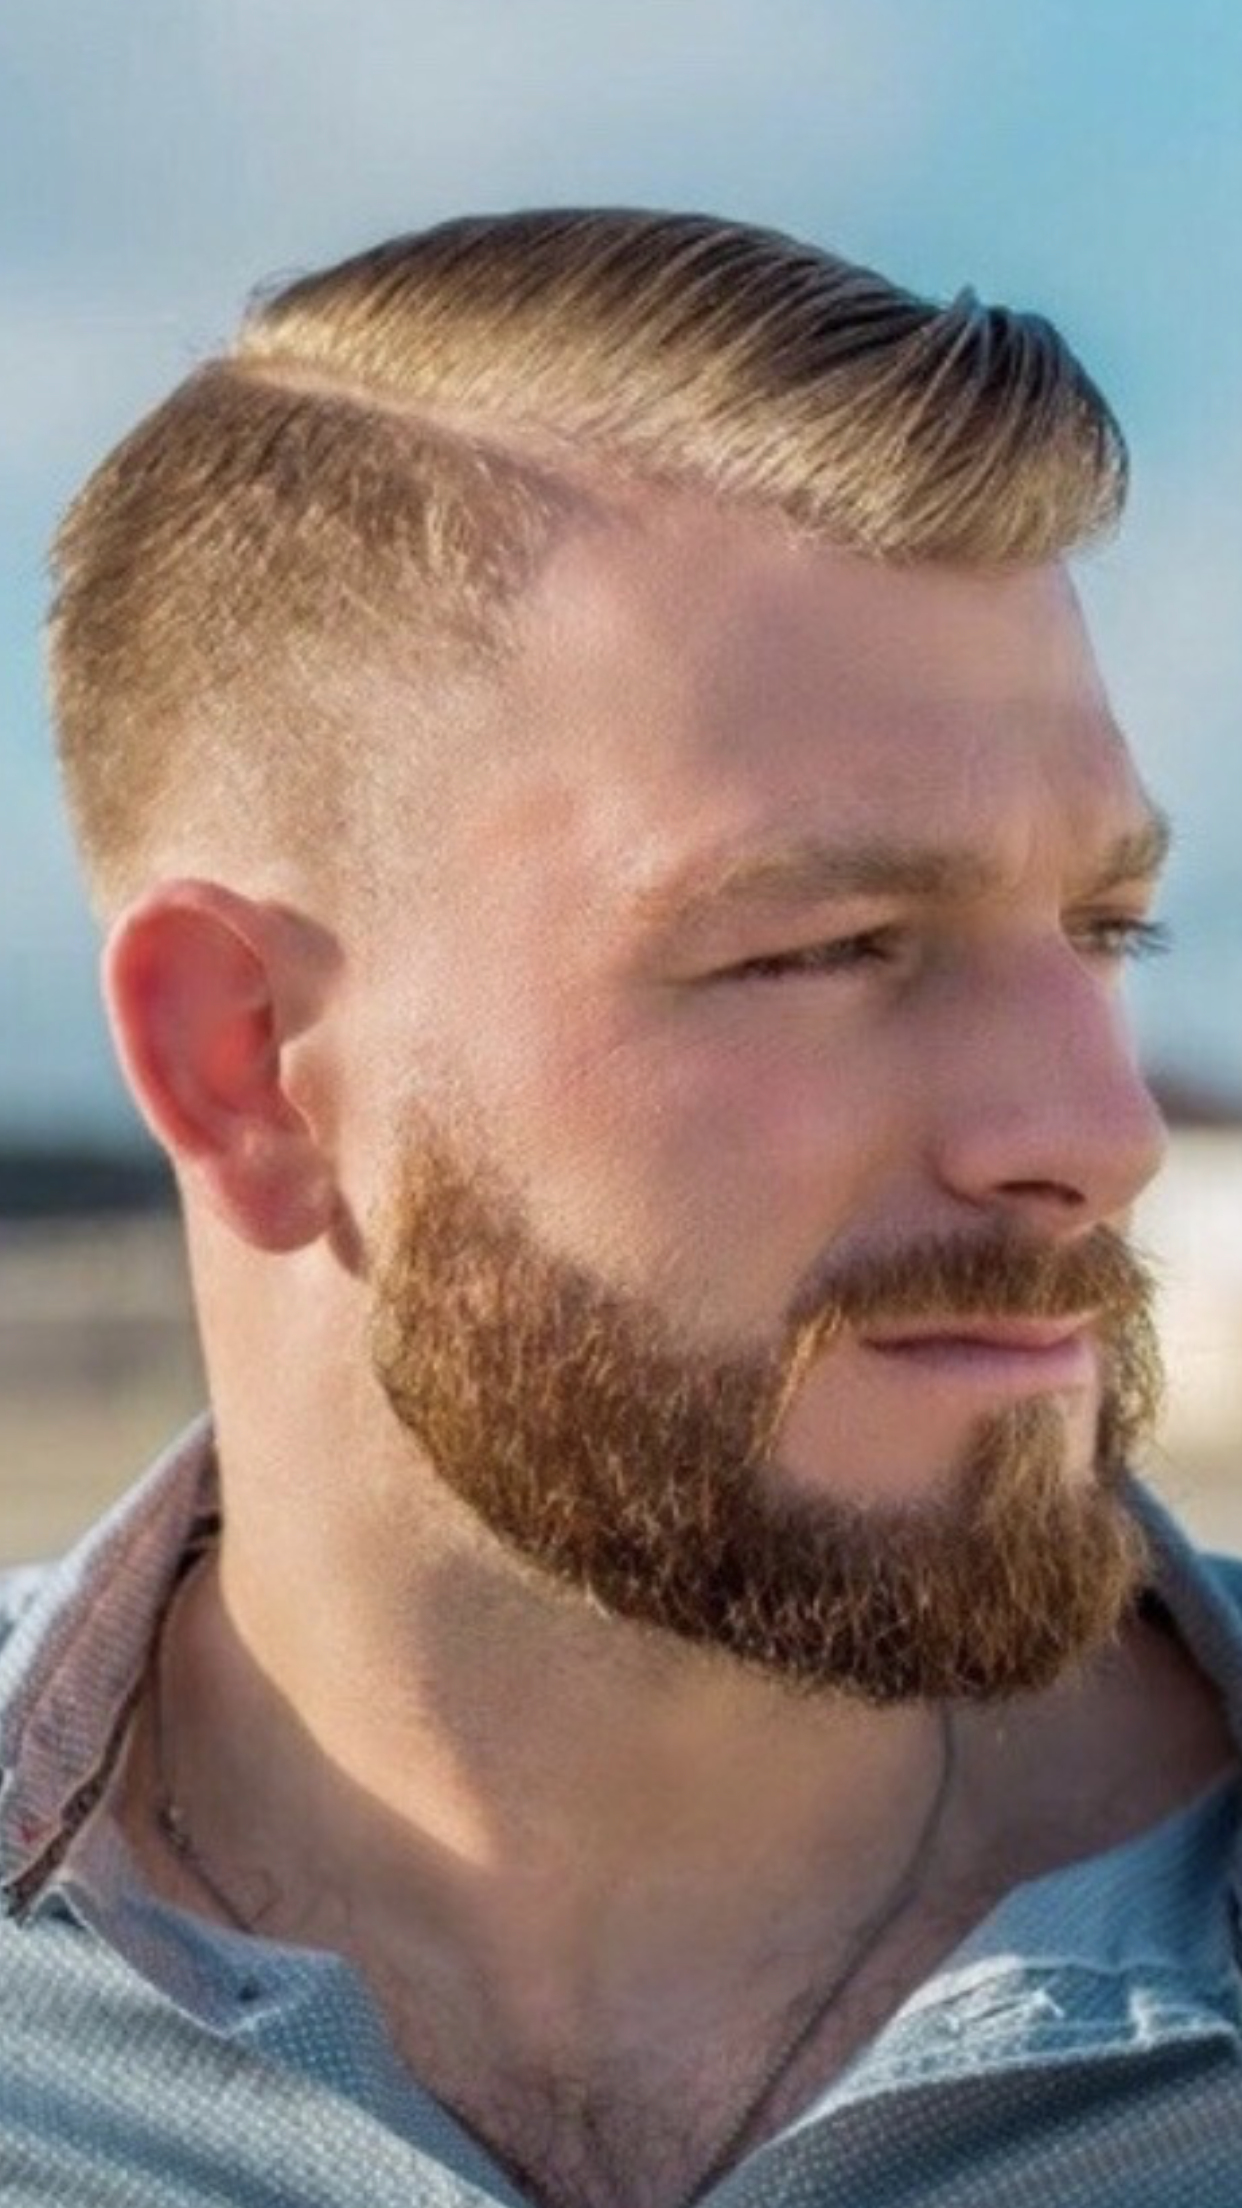 Best Nose Hair Trimmer 2020 50+ Trending Beard Styles For Men in 2020 (ALL SHAPES AND SIZES